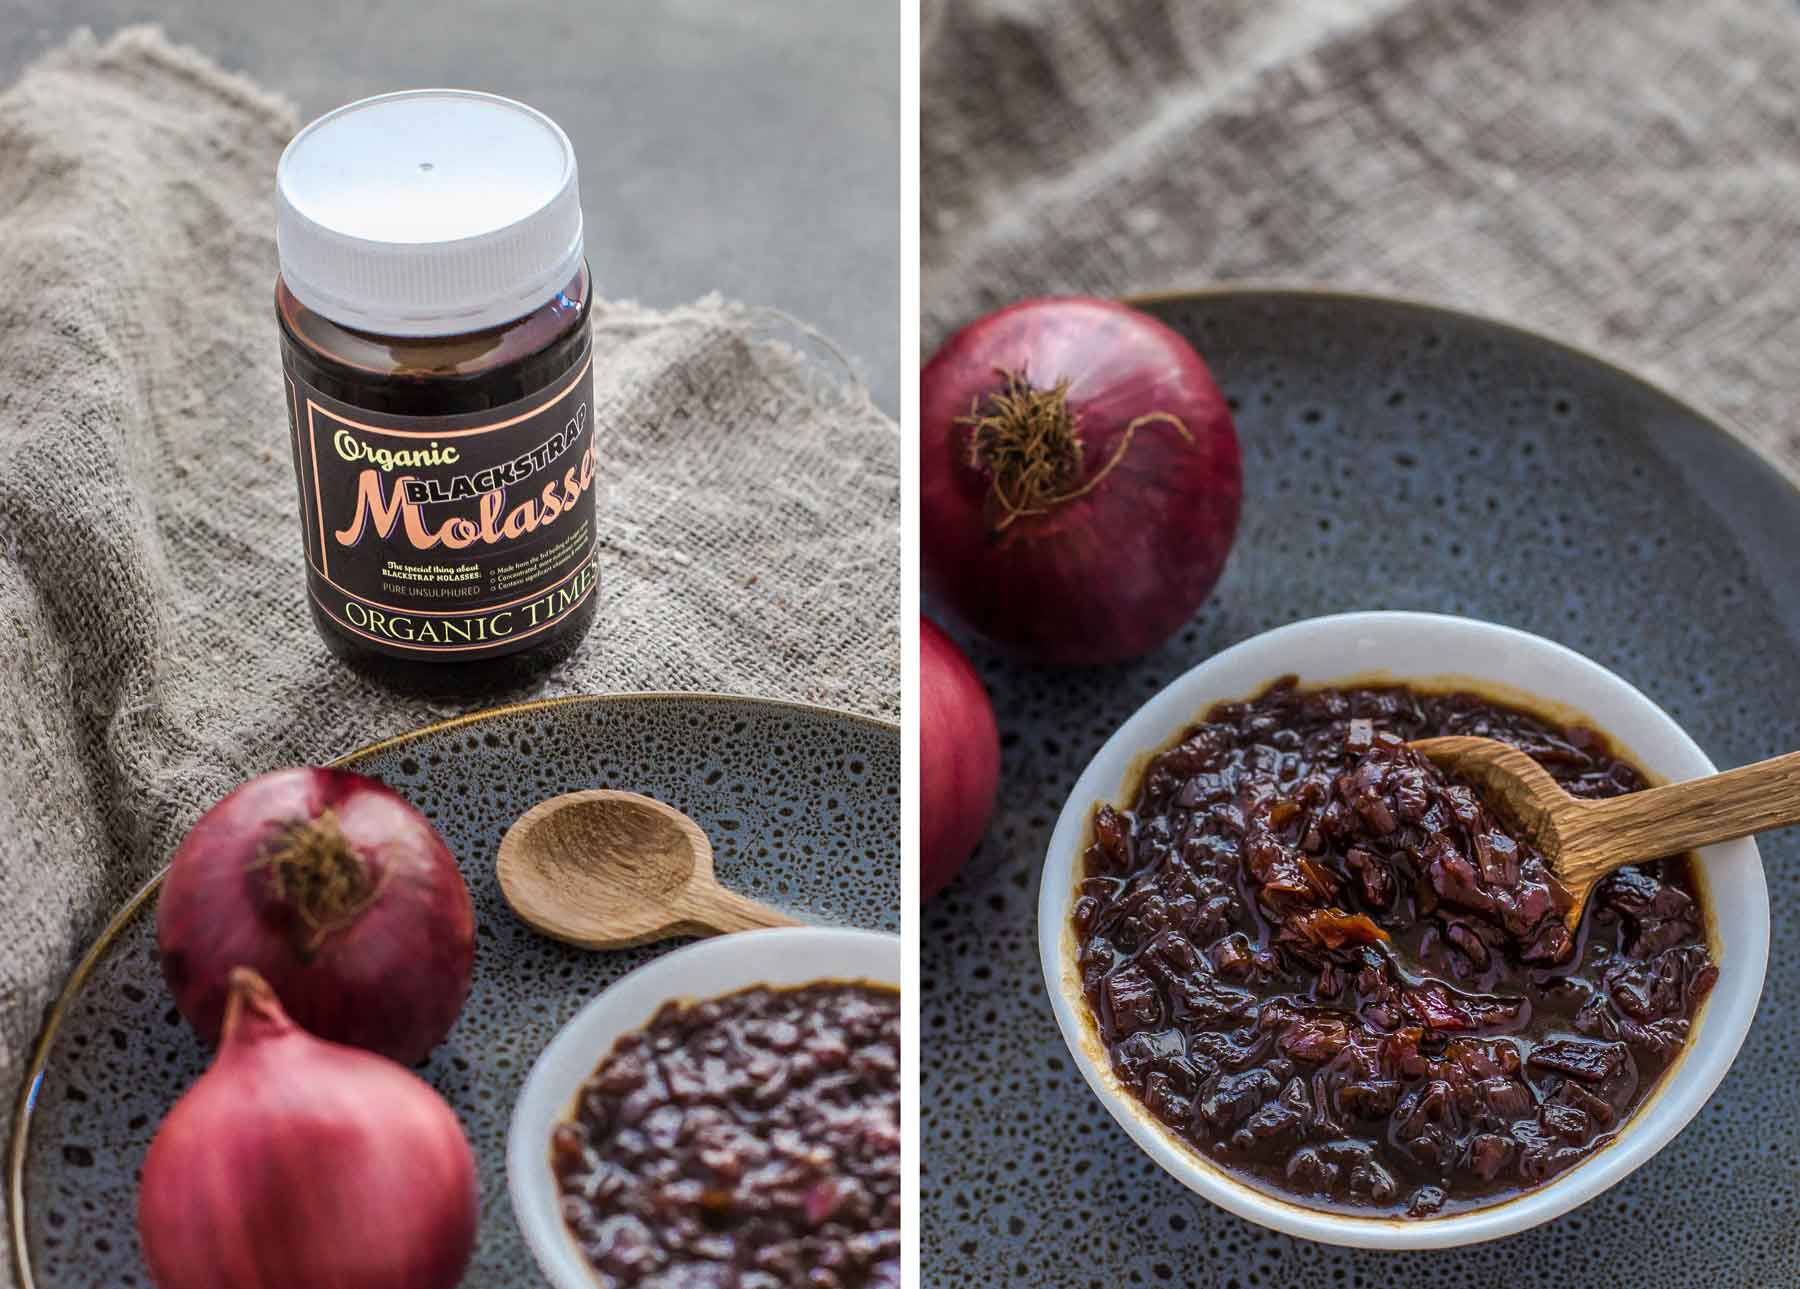 A jar of Organic Times Molasses next to a bowl onion jam and red onions